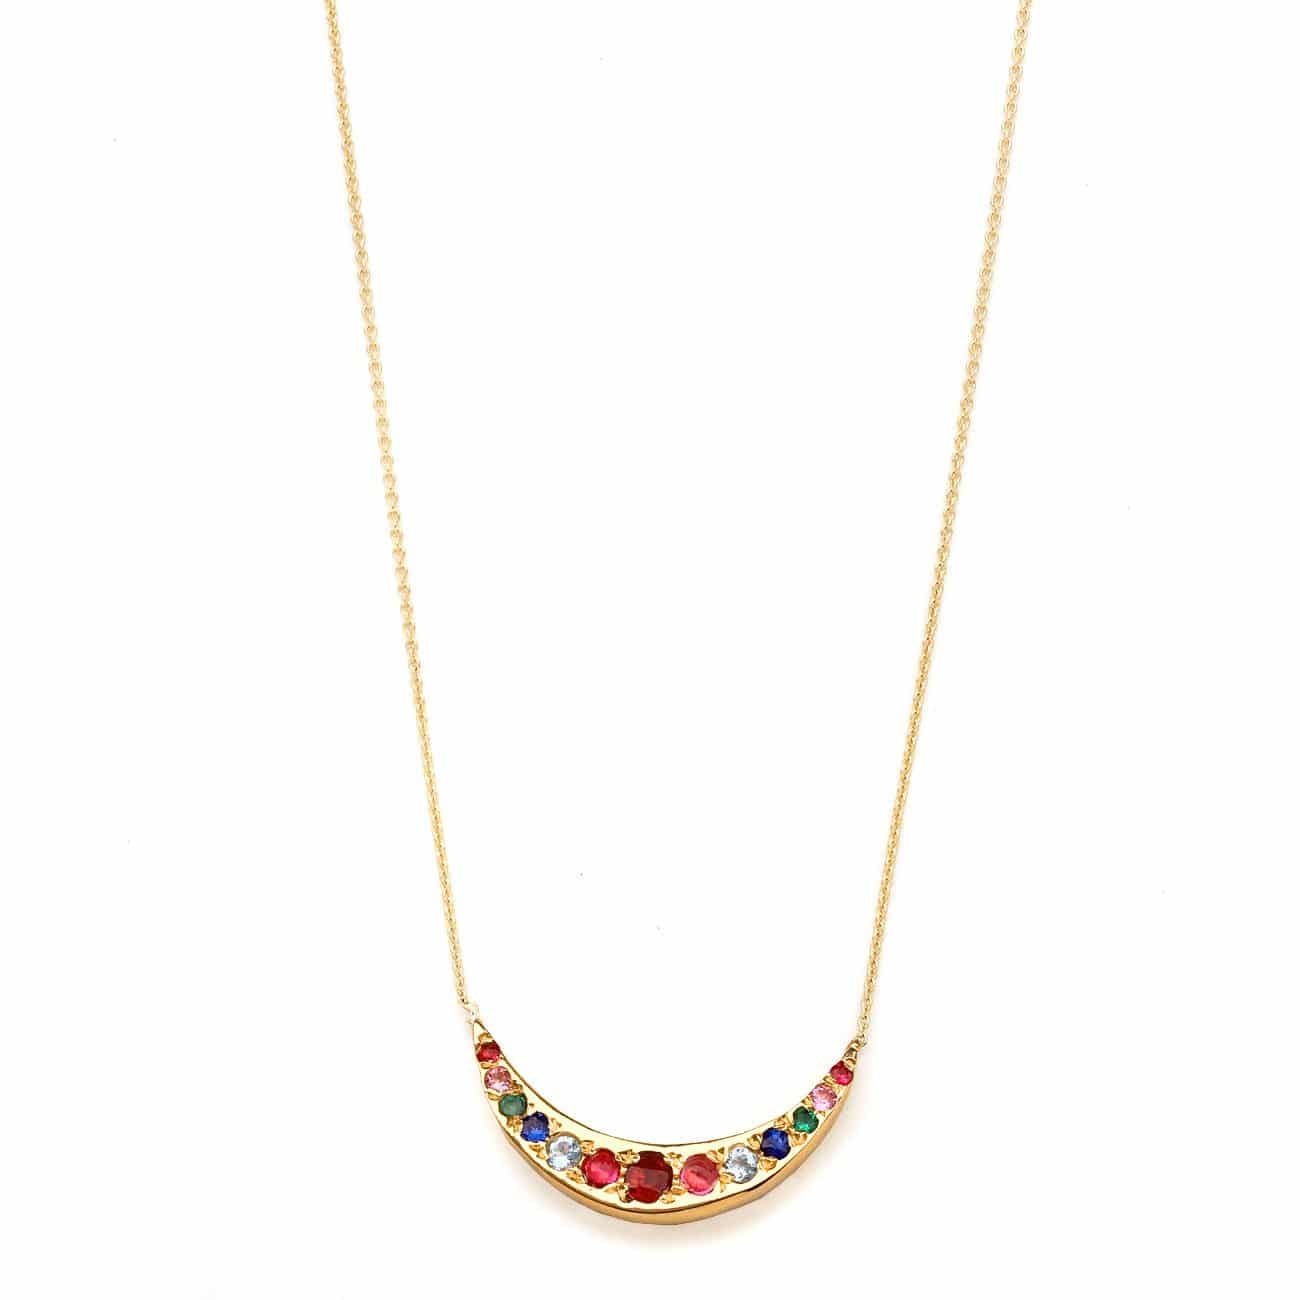 yellow-gold-tie-dye-moon-necklace-new01a